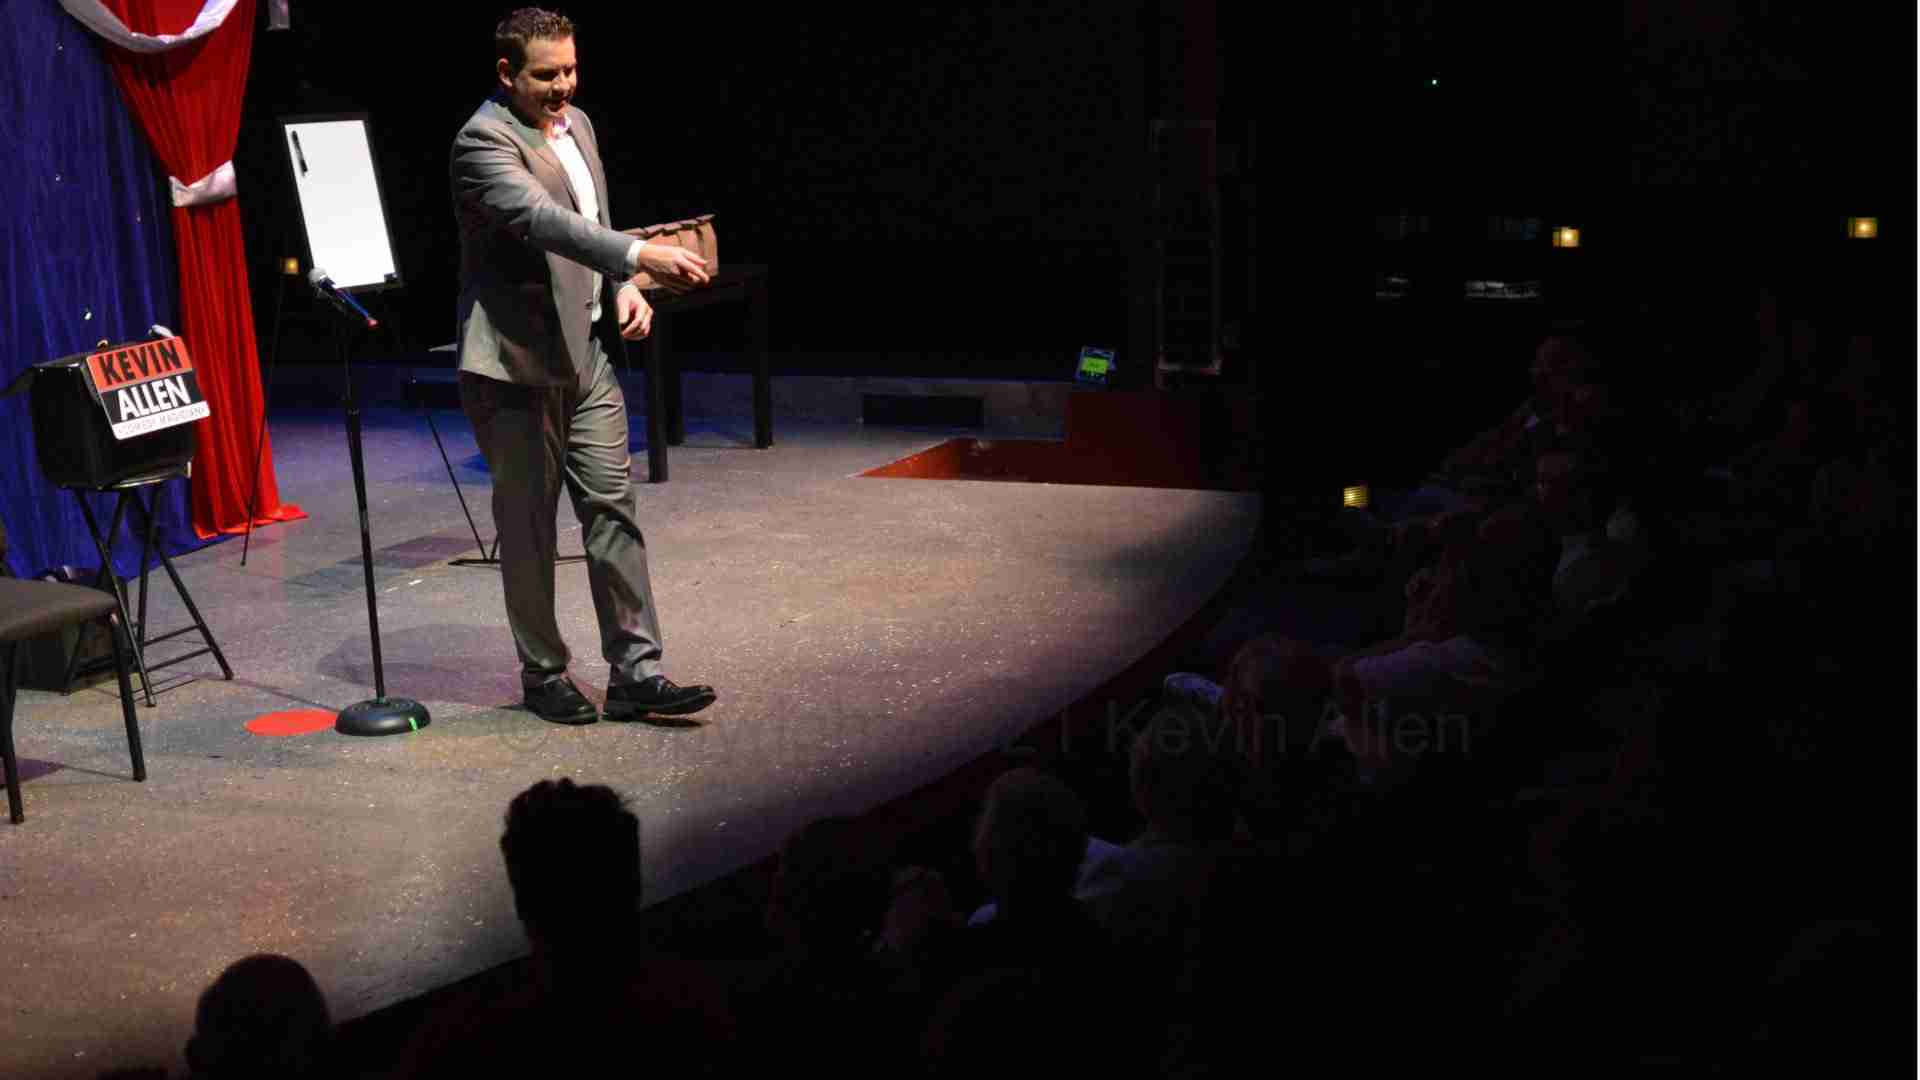 Kevin Allen performs a theater magic show